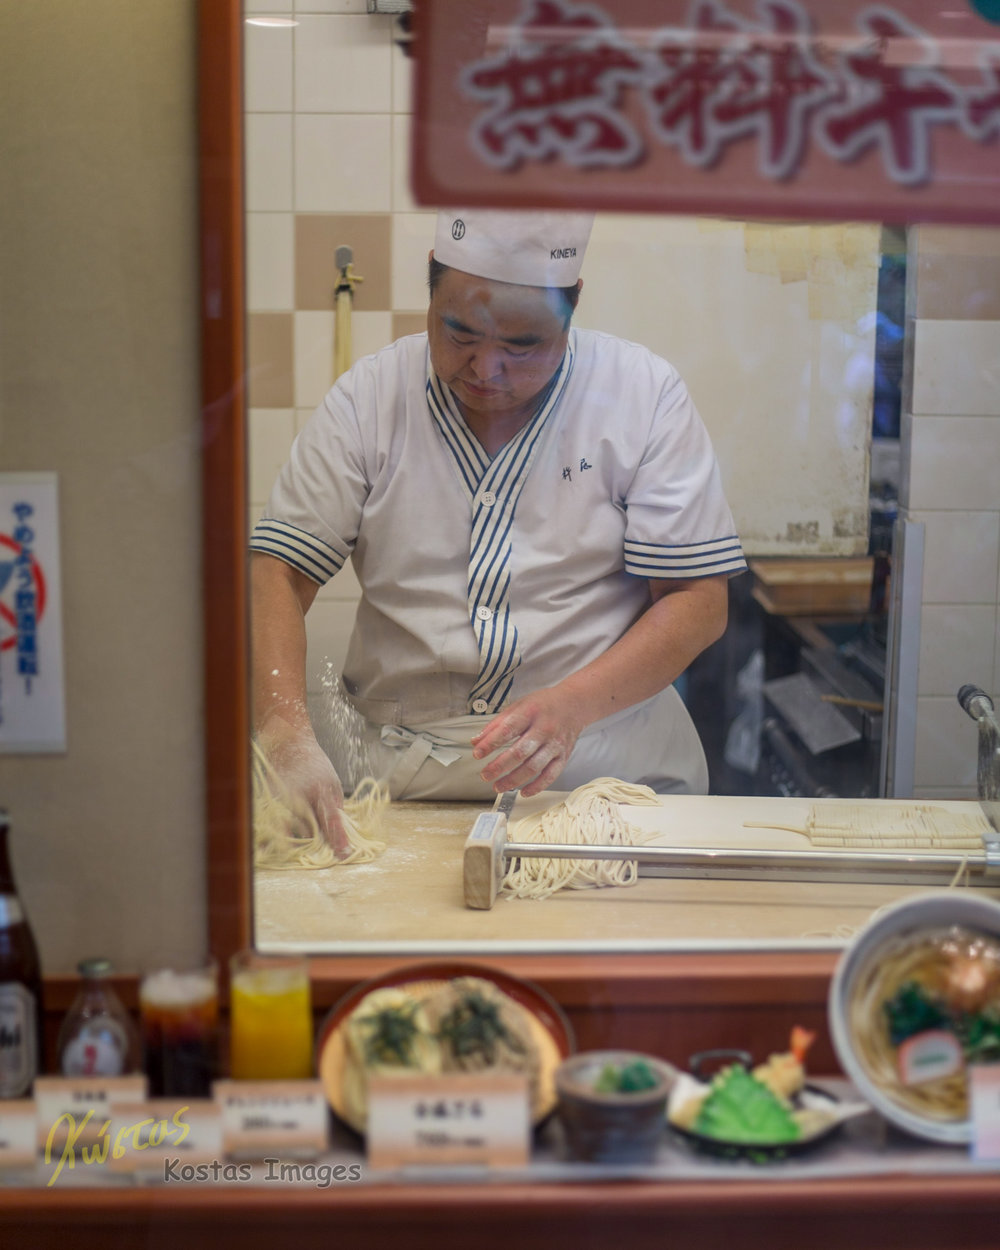 20160823-IMG_2617-Handmade Noodle Chef  Window.jpg